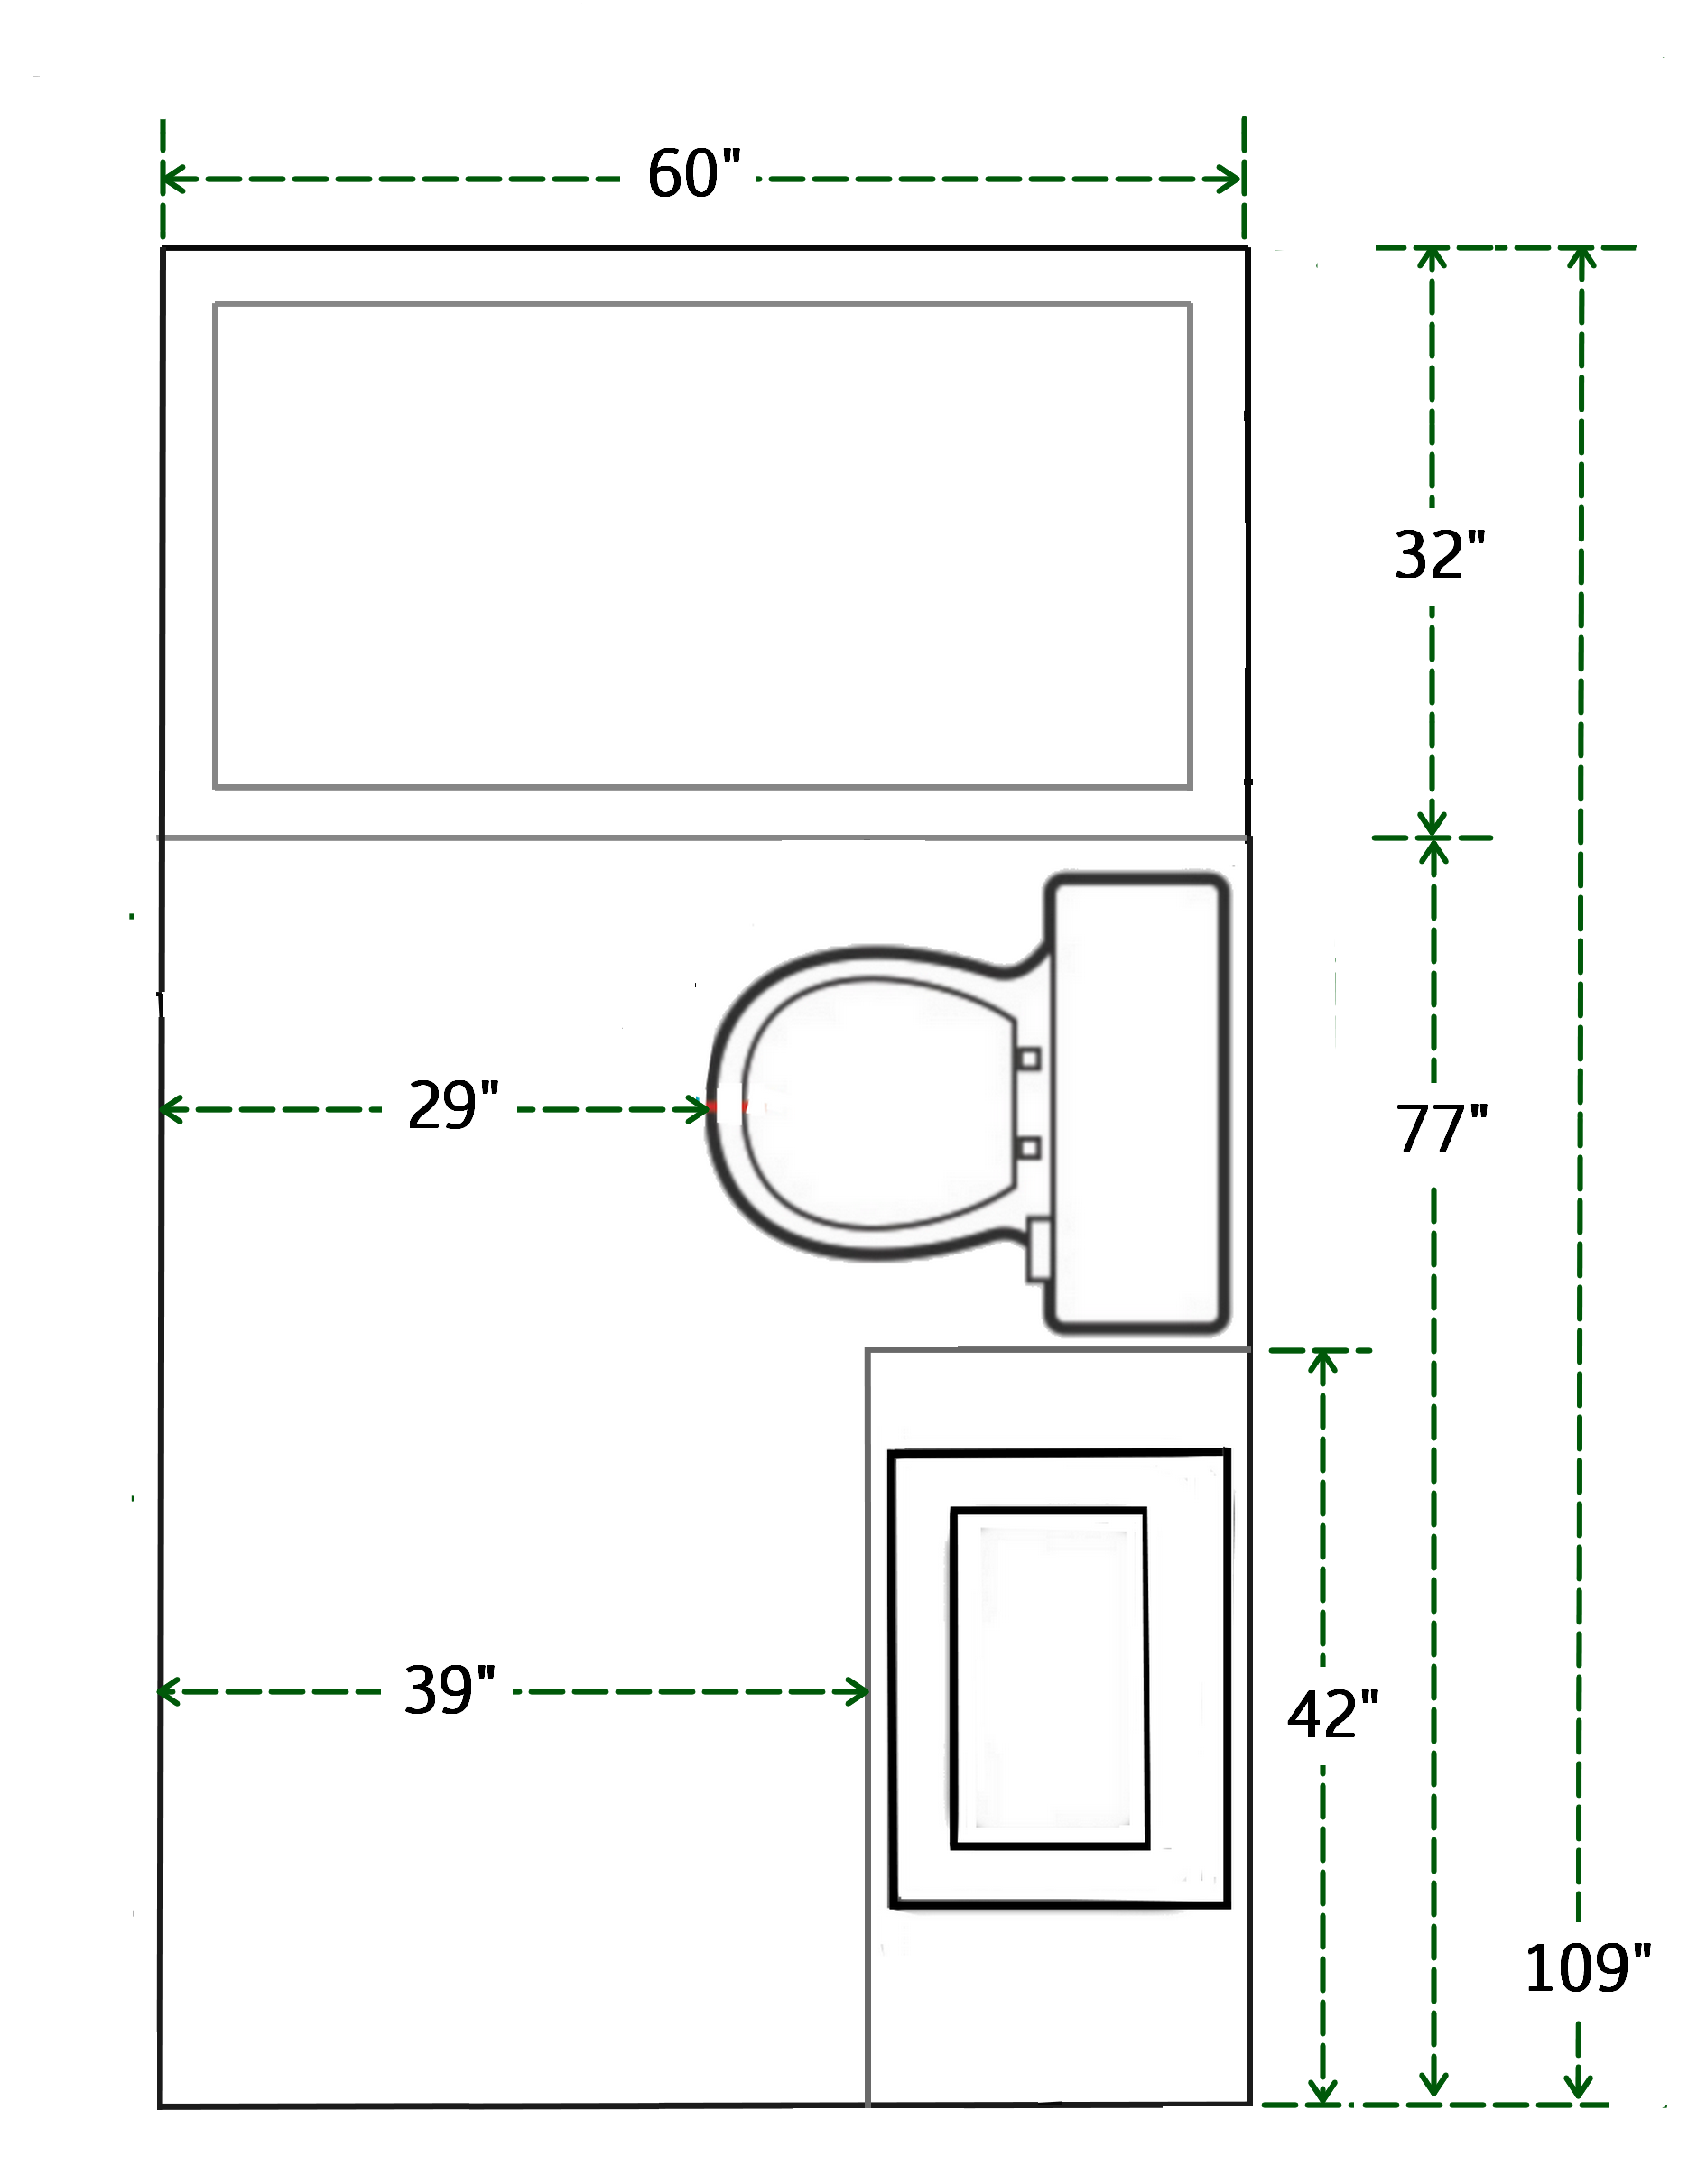 Bathroom Templates For Planning Floor Plan And Measurements Of Small Bathroom Add A Shower